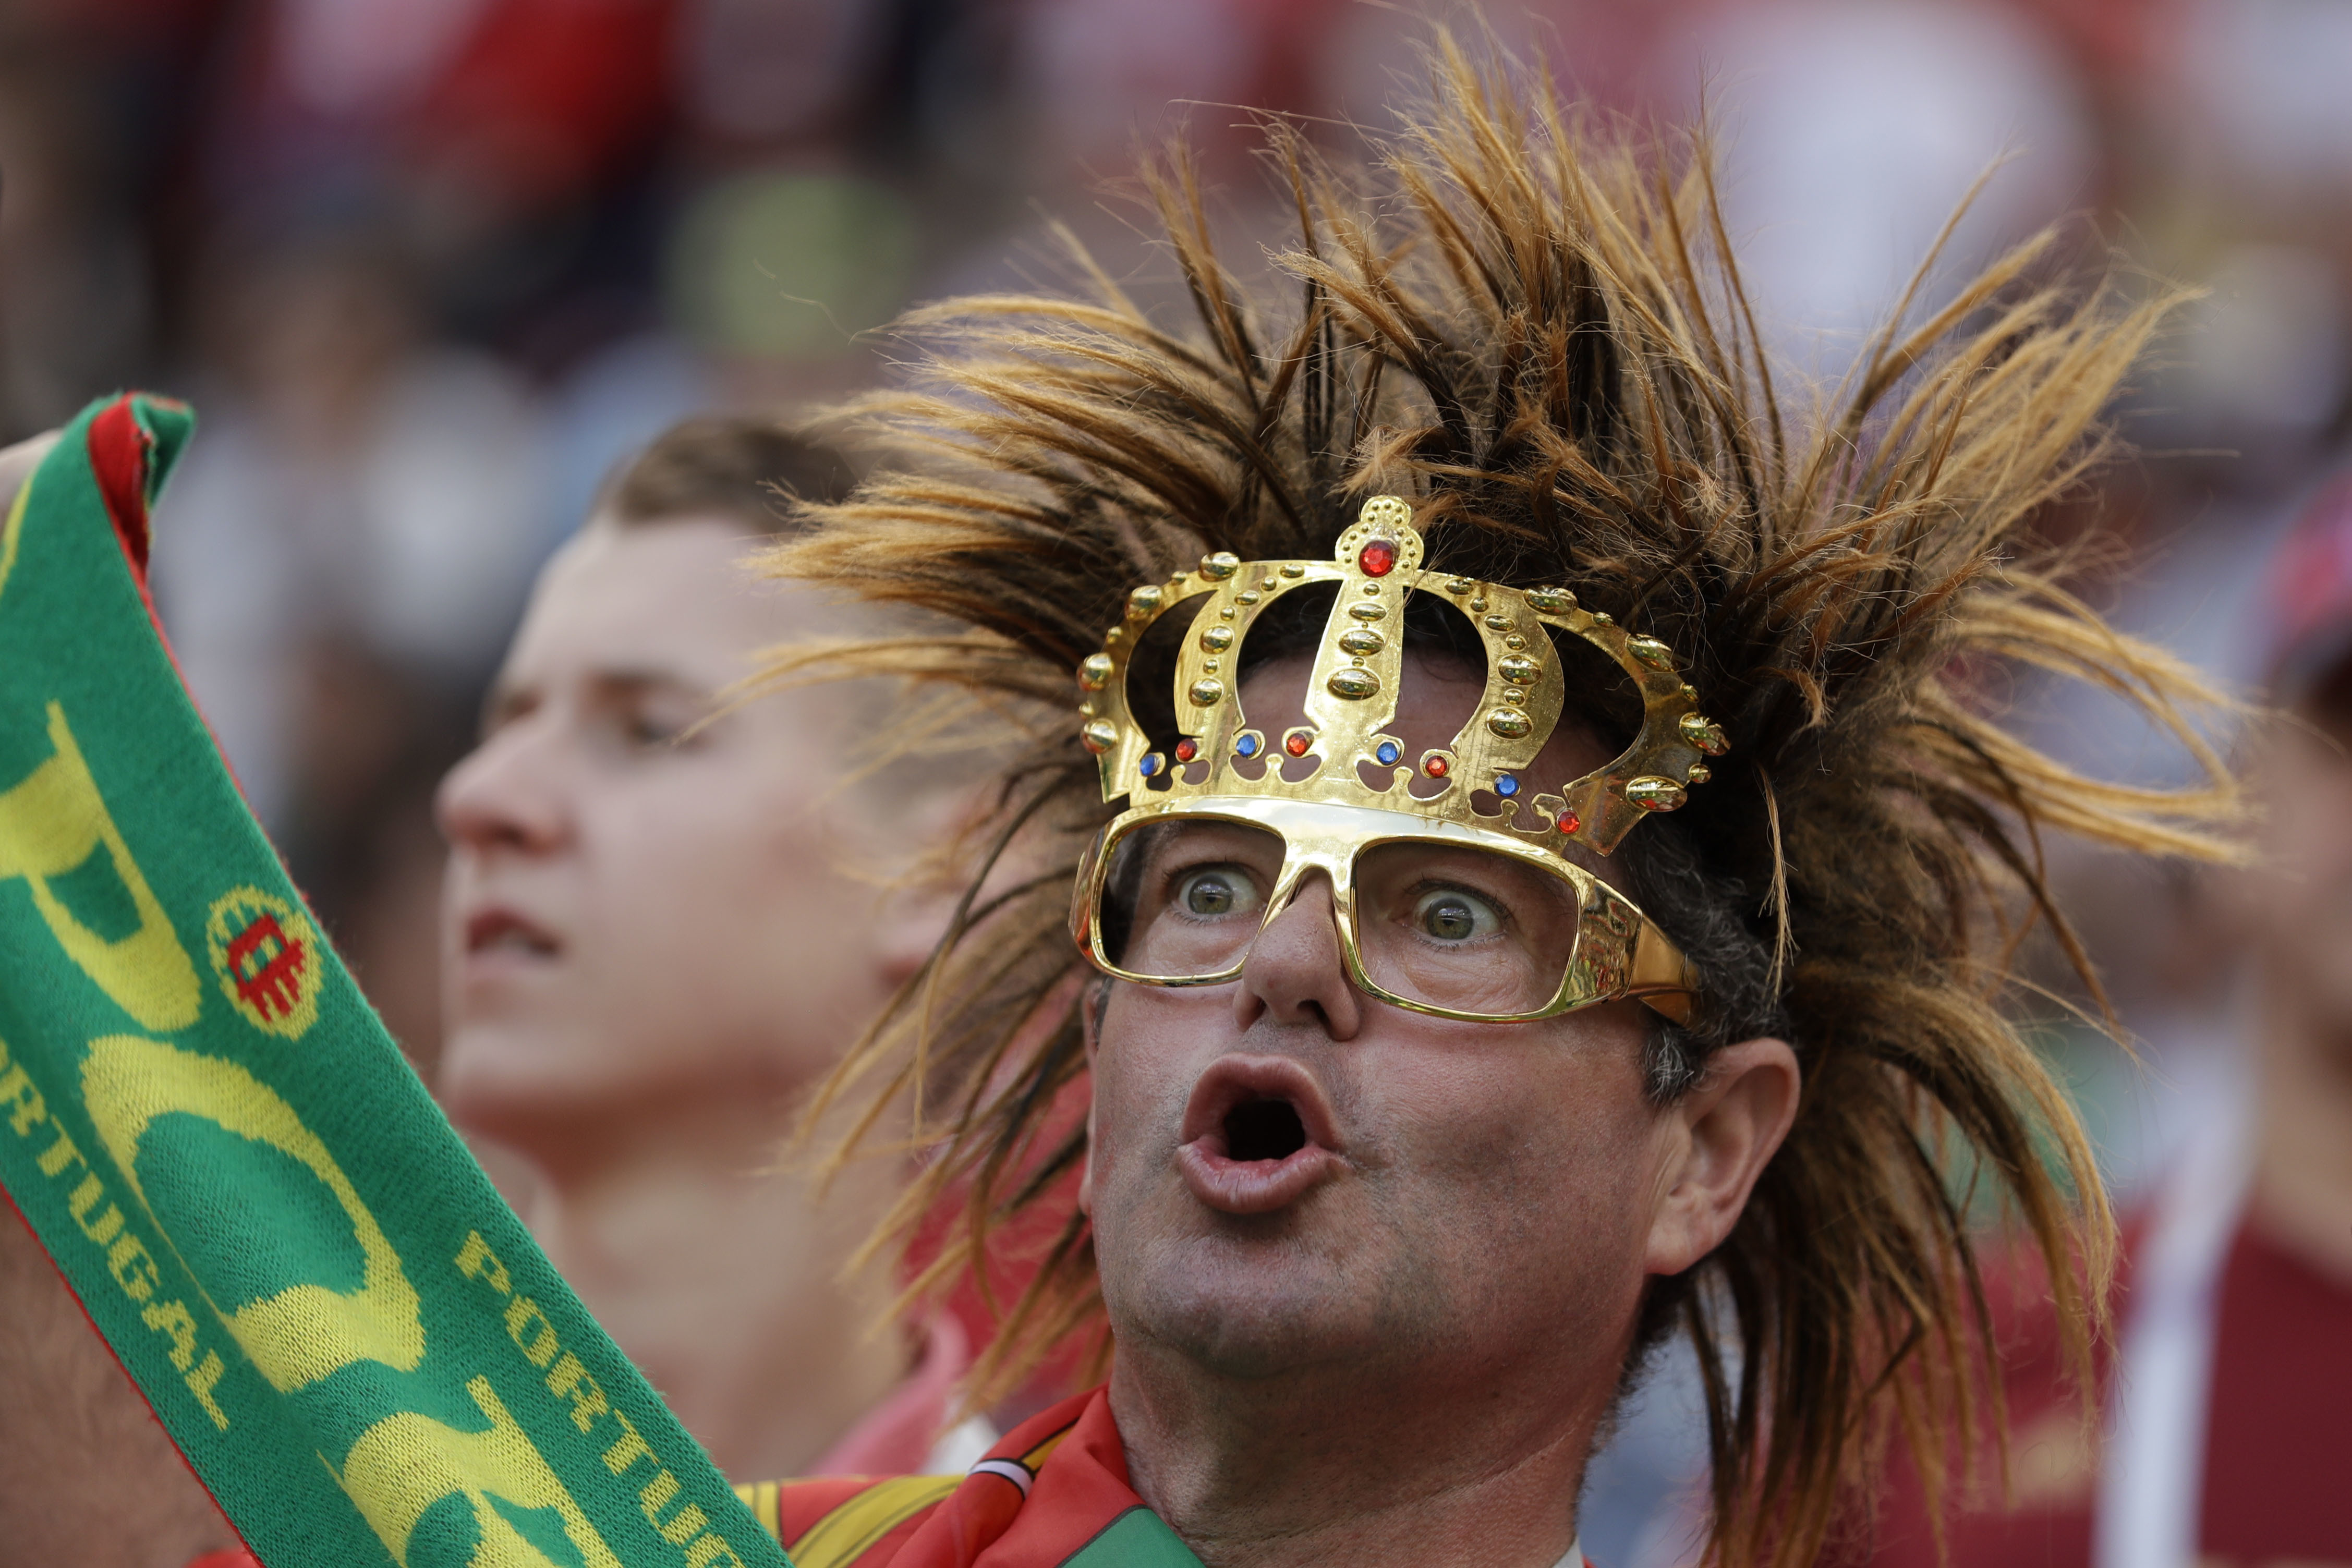 <div class='meta'><div class='origin-logo' data-origin='none'></div><span class='caption-text' data-credit='Matthias Schrader/AP Photo'>A supporter of Portugal cheers prior to the group B match between Portugal and Morocco in the Luzhniki Stadium in Moscow, Russia, Wednesday, June 20, 2018.</span></div>